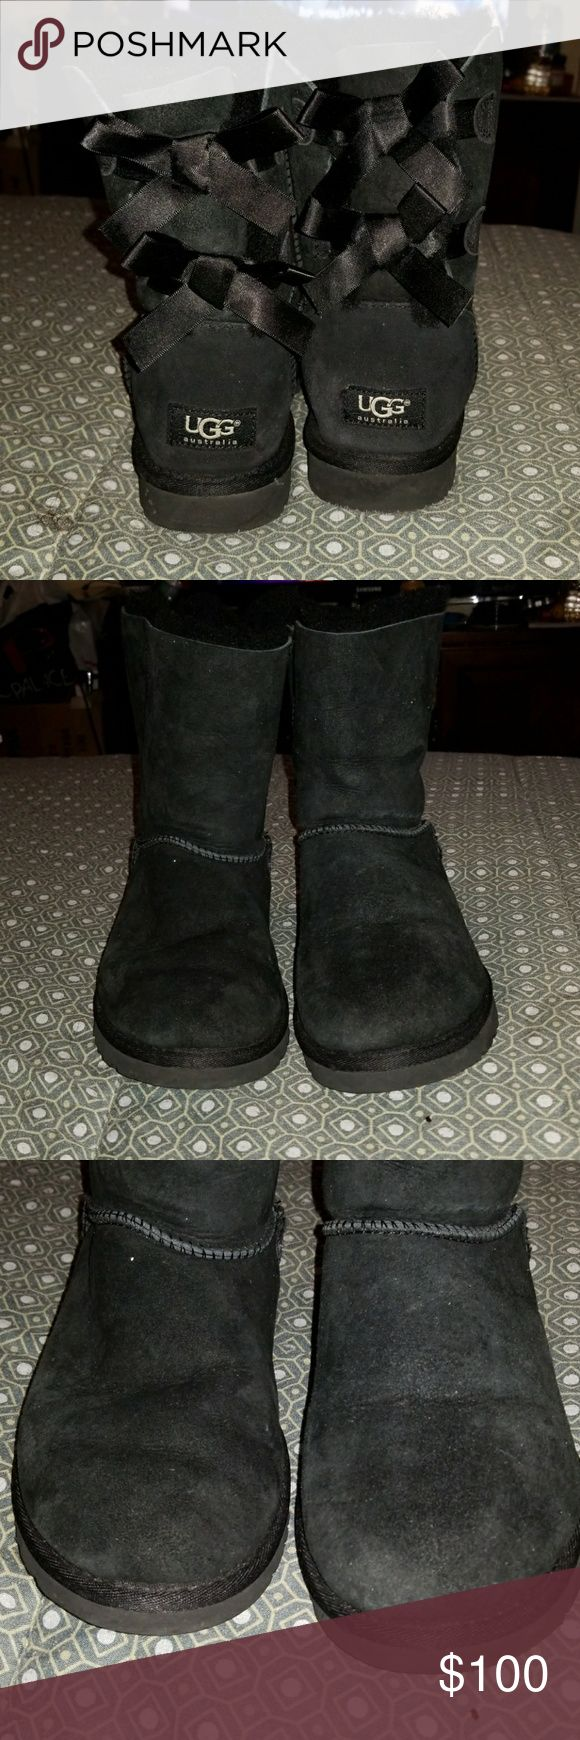 Used black Ugg boots Used black Ugg boots all stain and scratches shown in pictures / No box UGG Shoes Ankle Boots & Booties